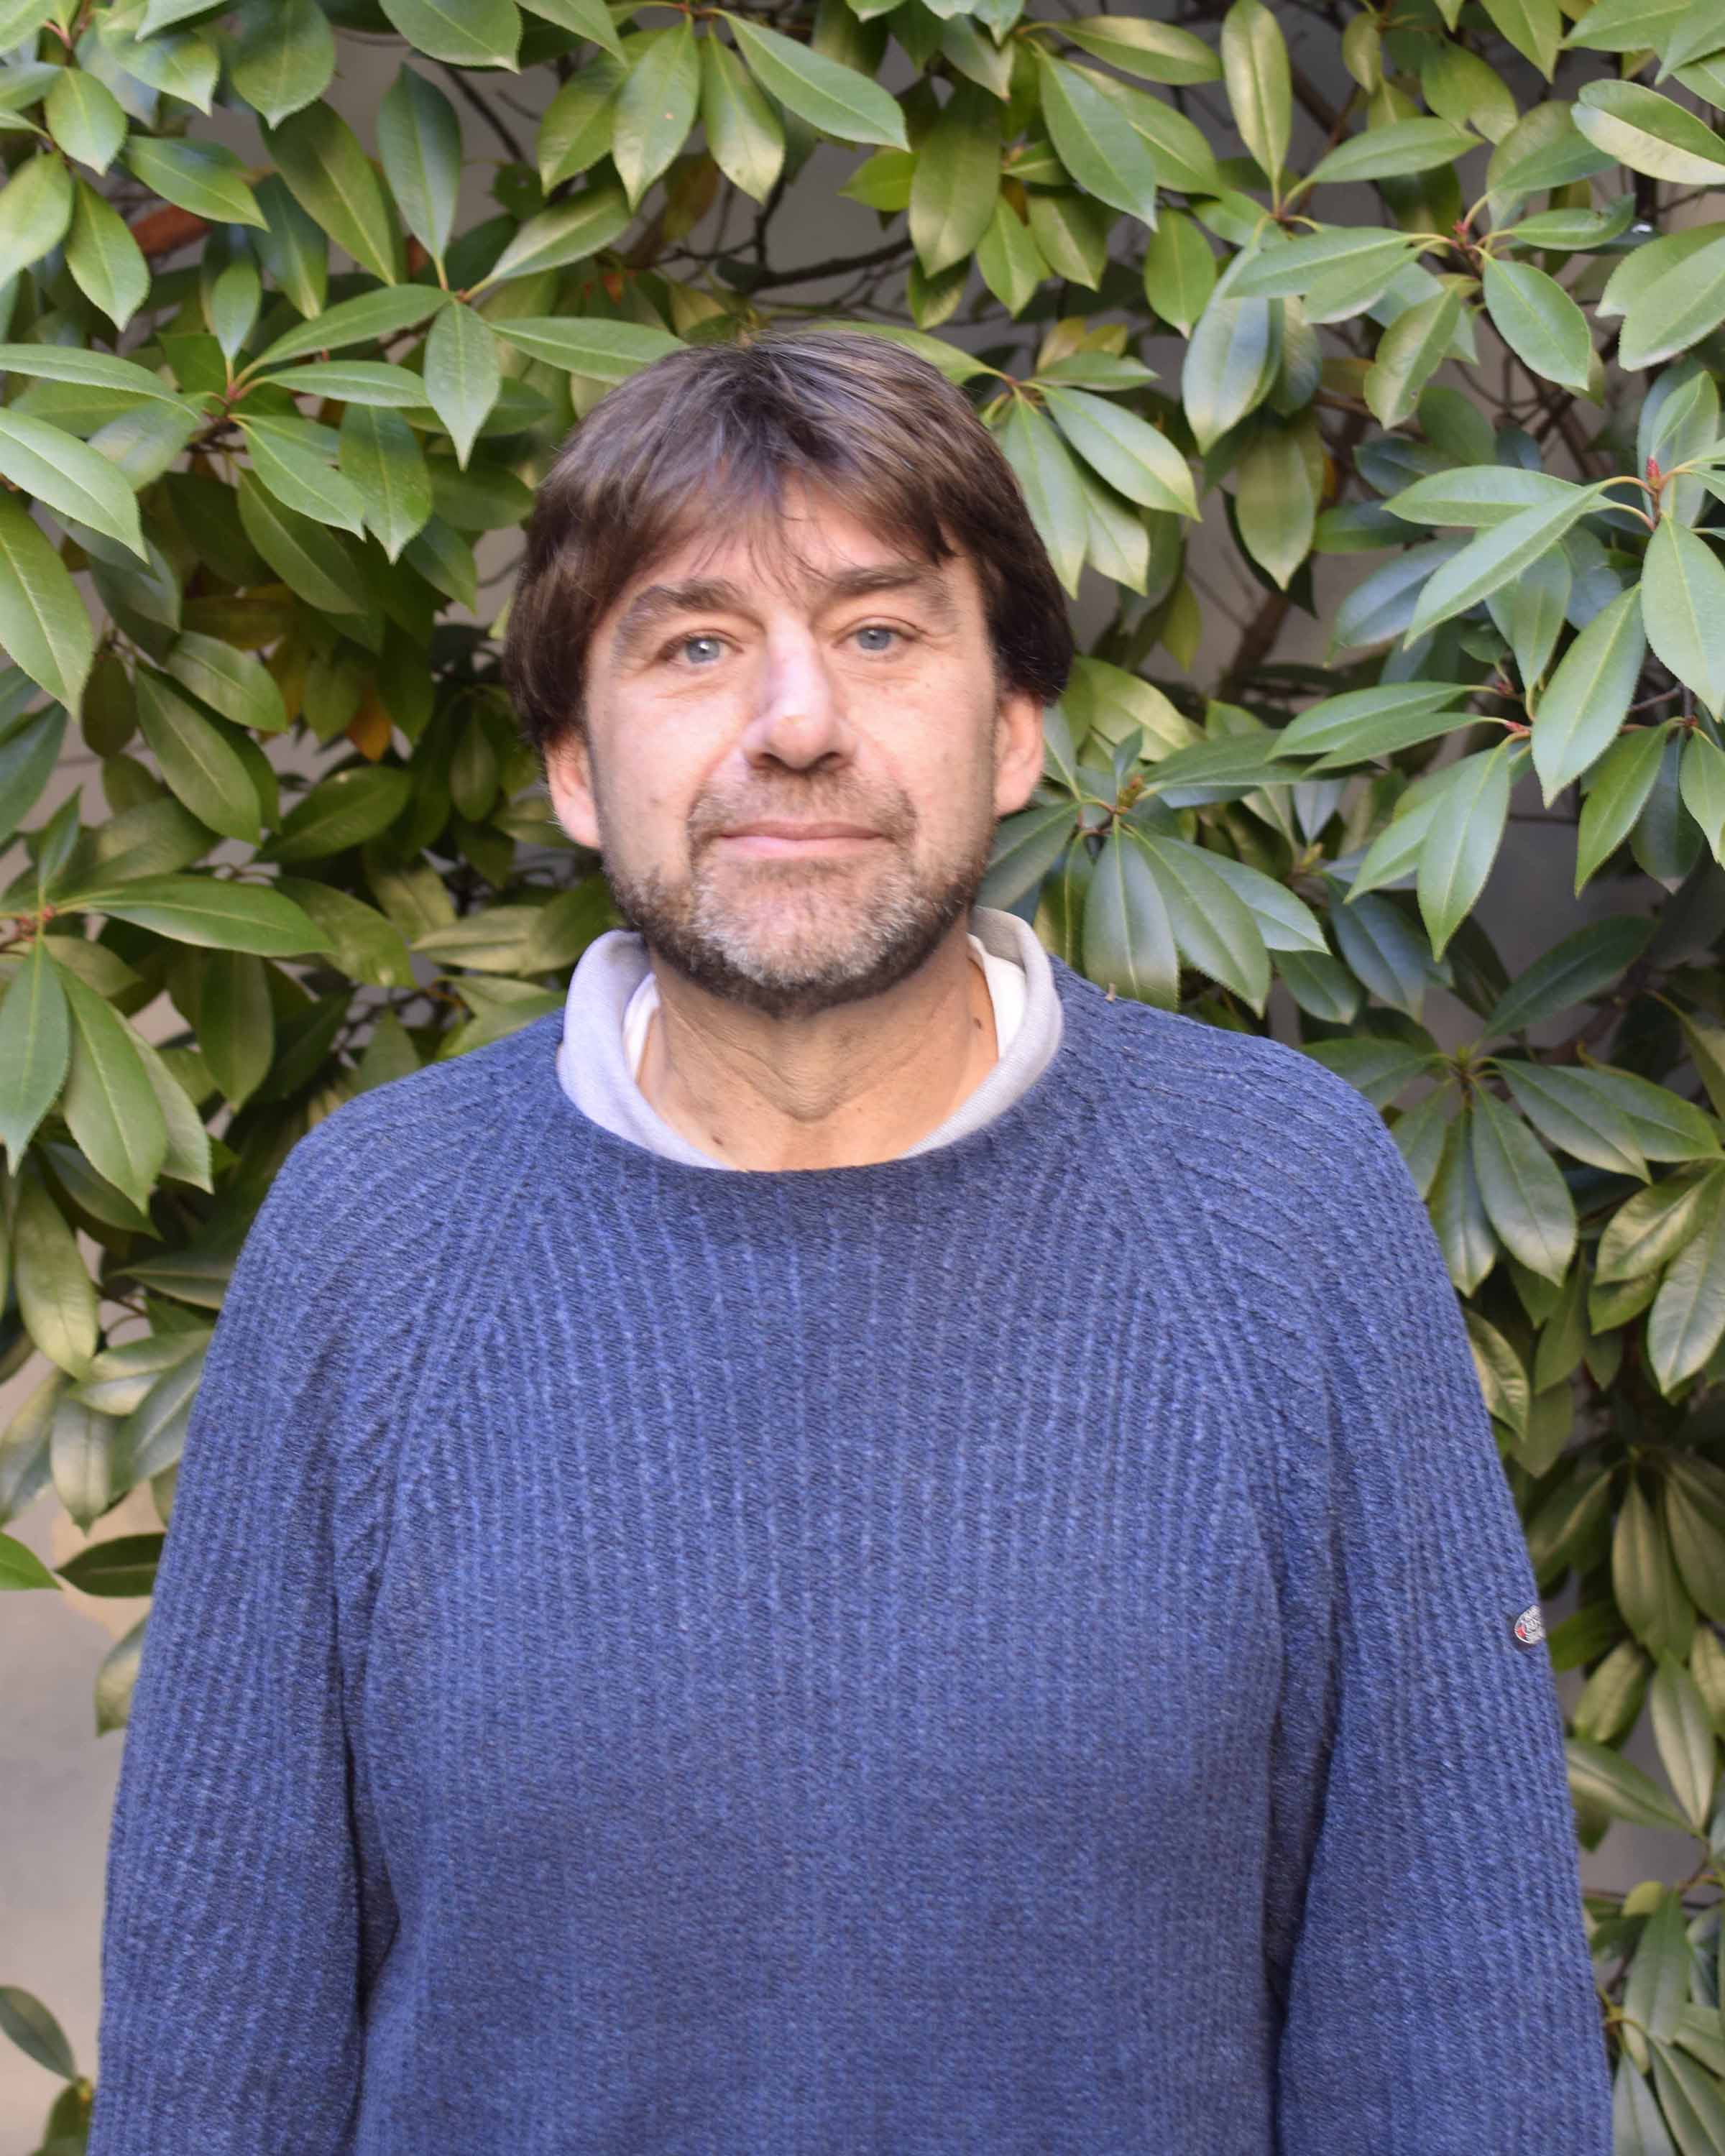 Valerio Bozzoli Parasacchi  Agronomist Agro-Environmental Director and Partner